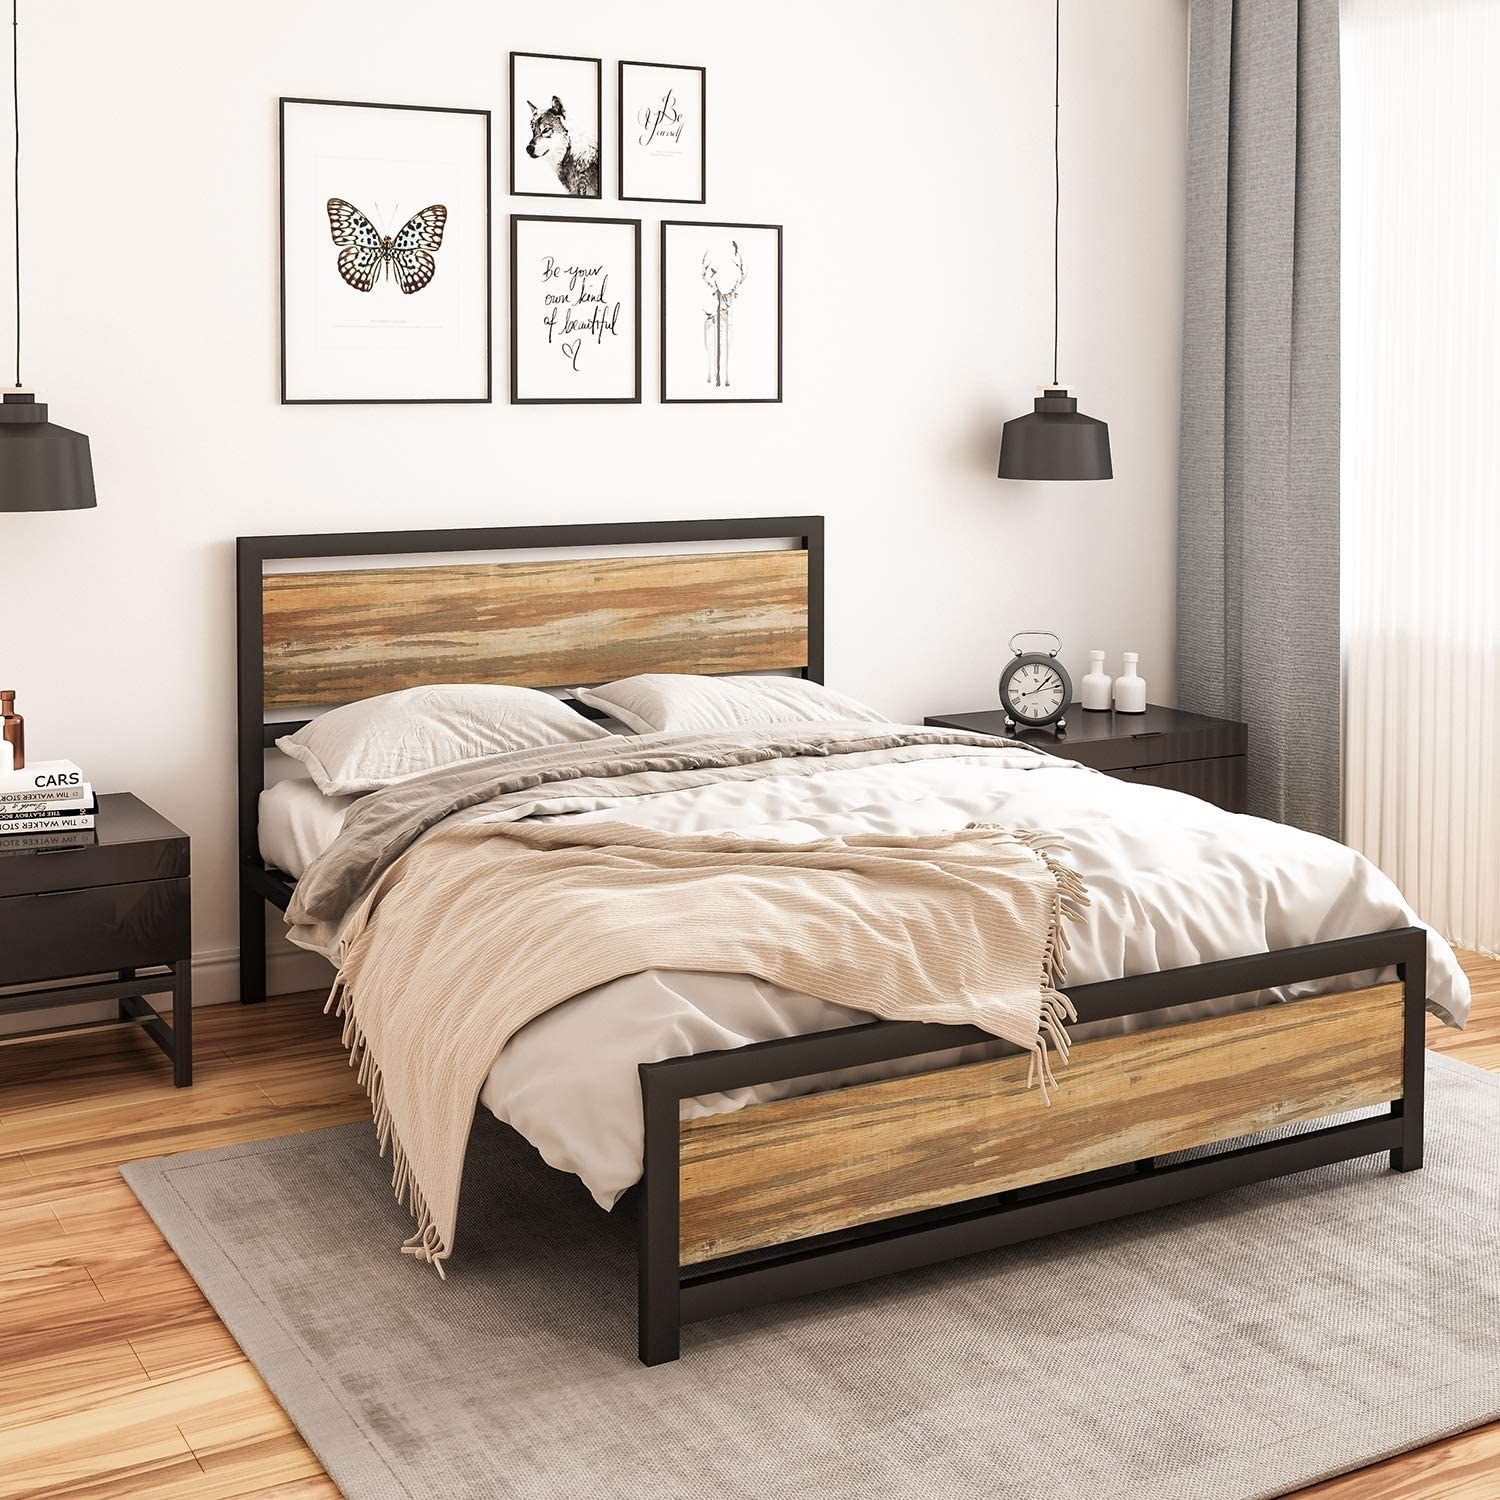 The wood and metal bed frame